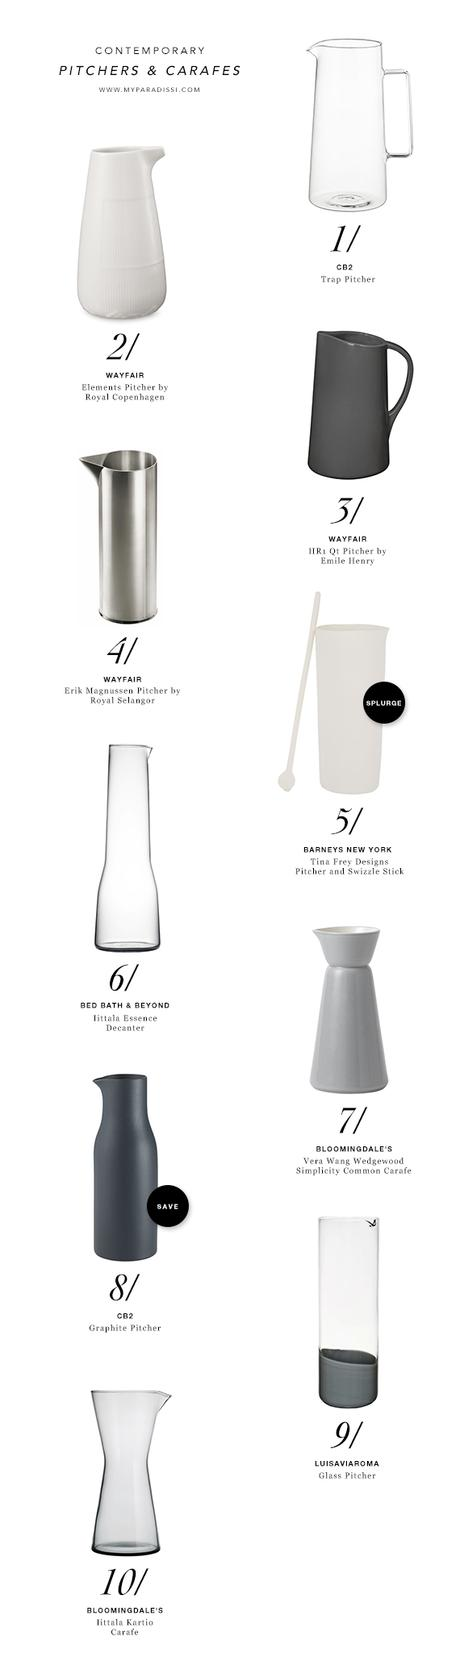 10 BEST: Contemporary pitchers and carafes | My Paradissi